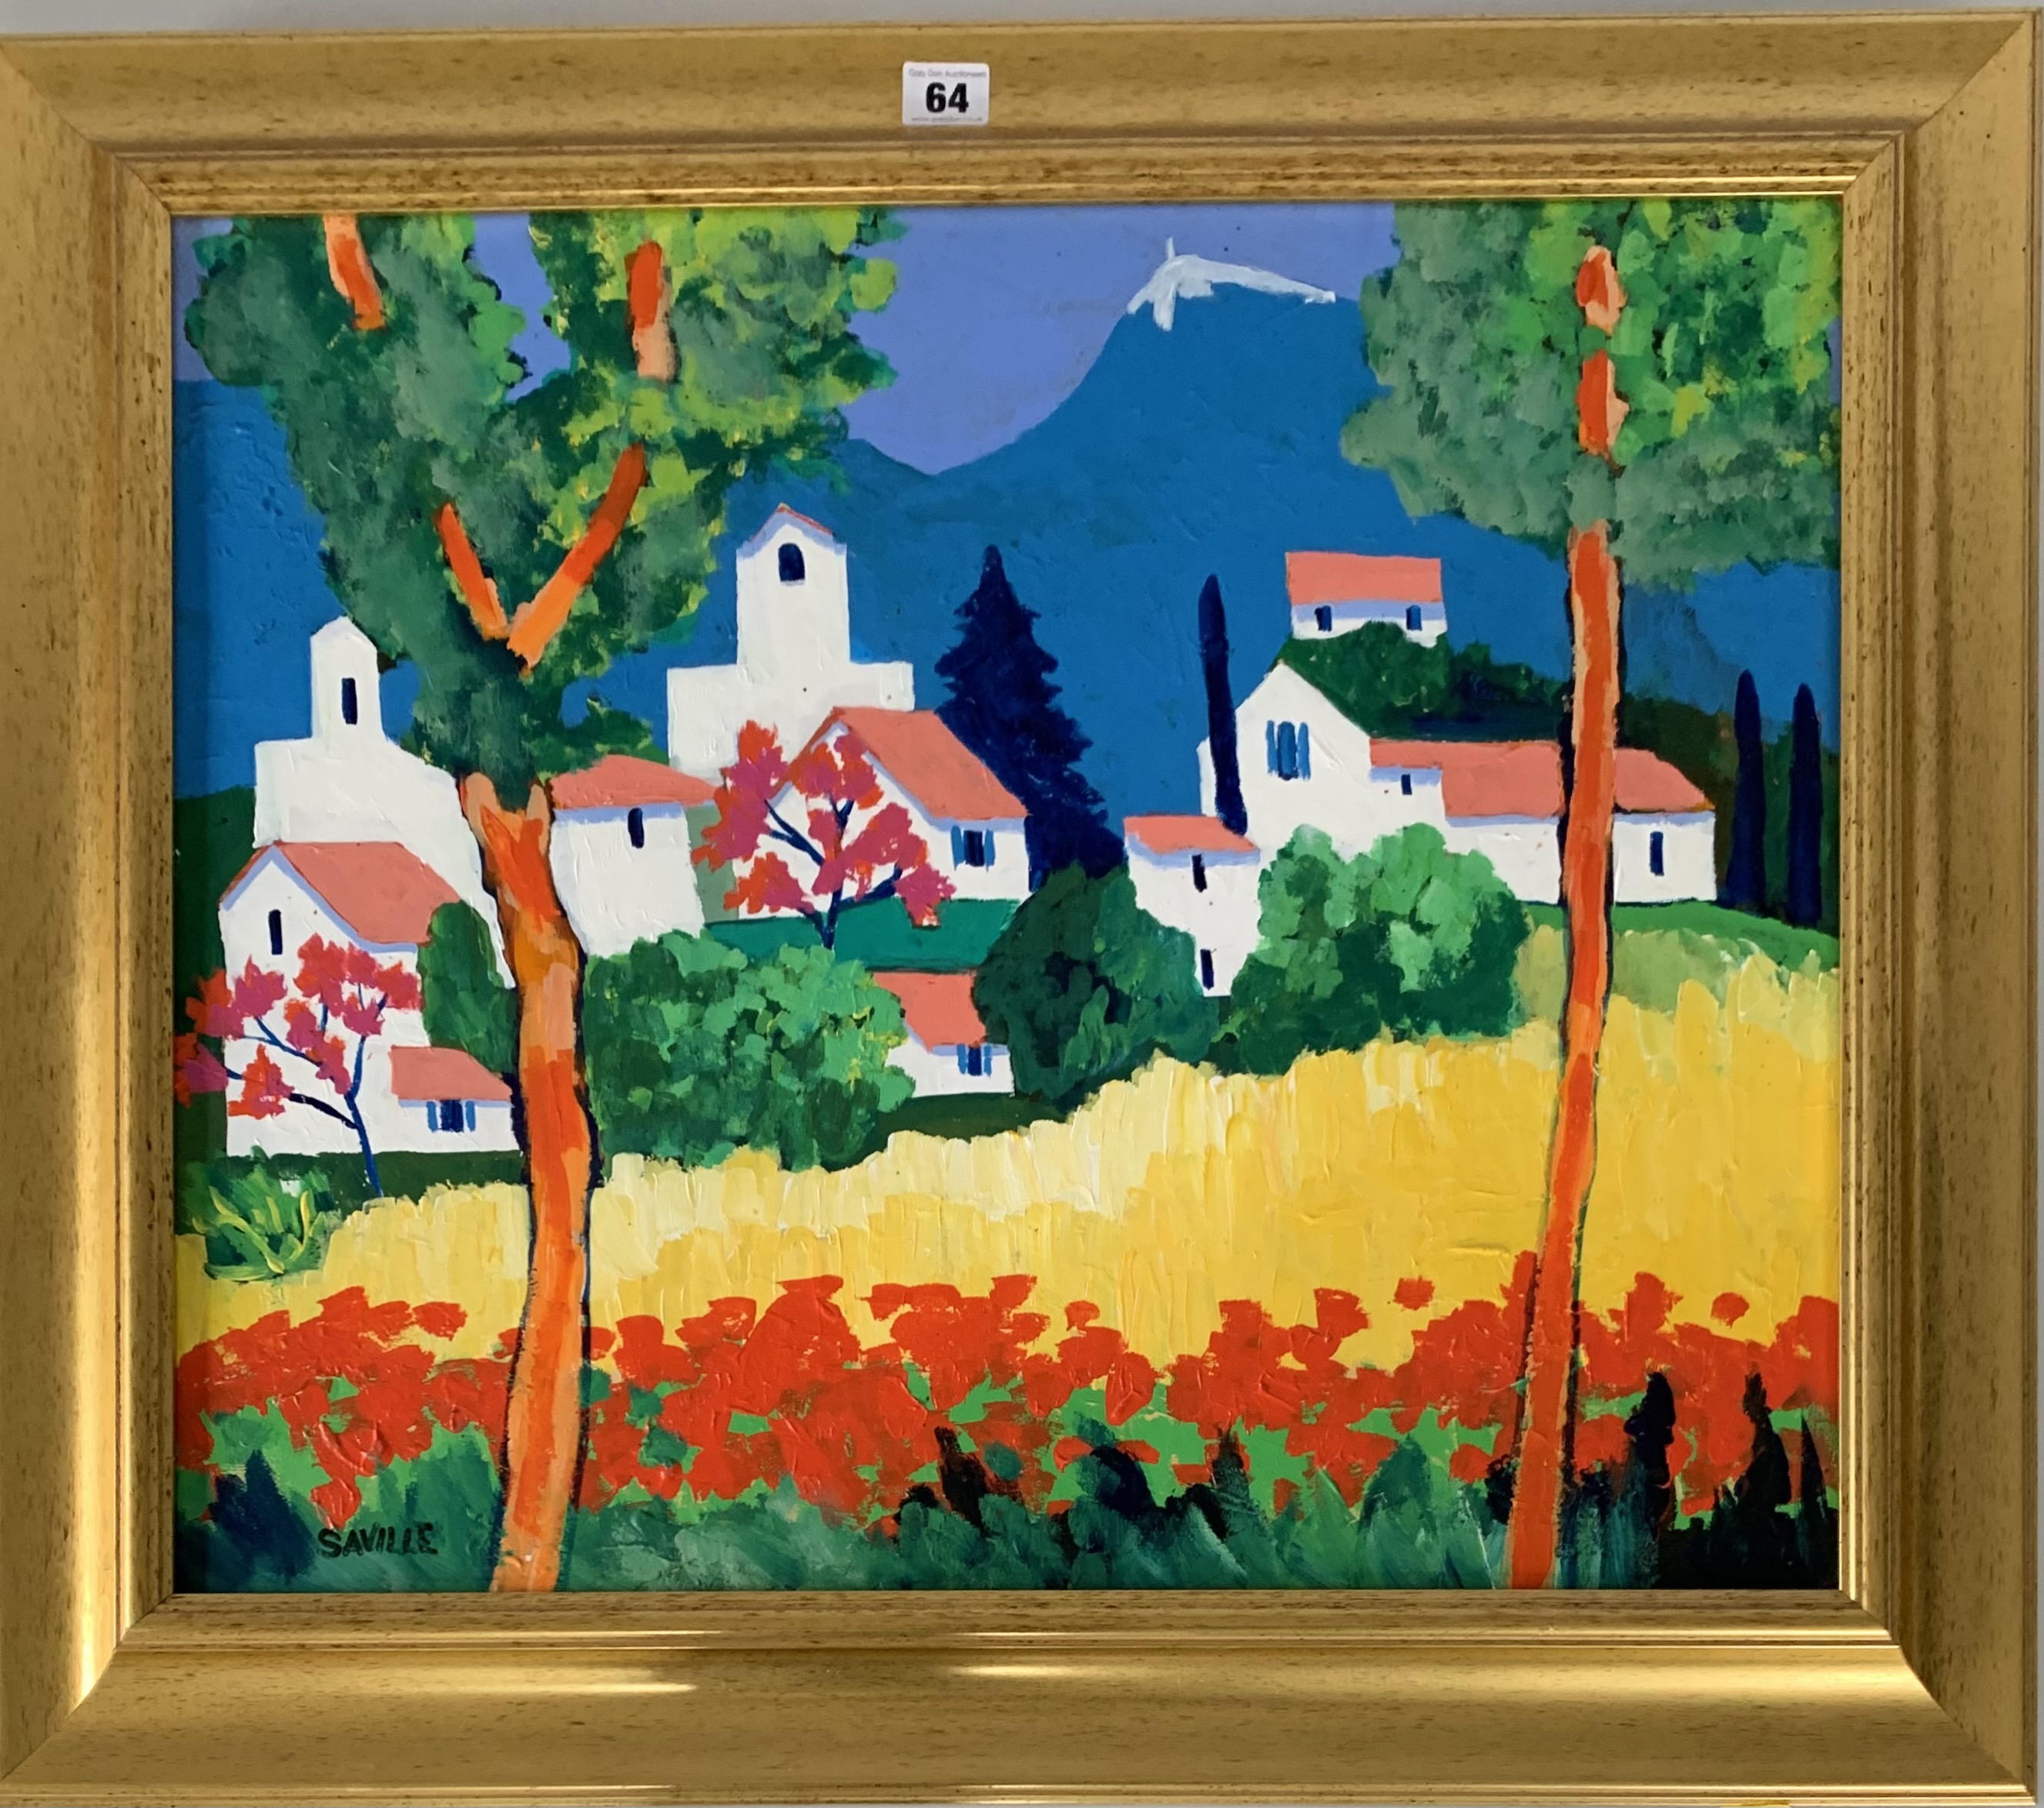 """Acrylic on board """"Flassan-Provence"""" by M. Saville '98, image 23.5"""" x 19.5"""", frame 29.5"""" x 25.5""""."""